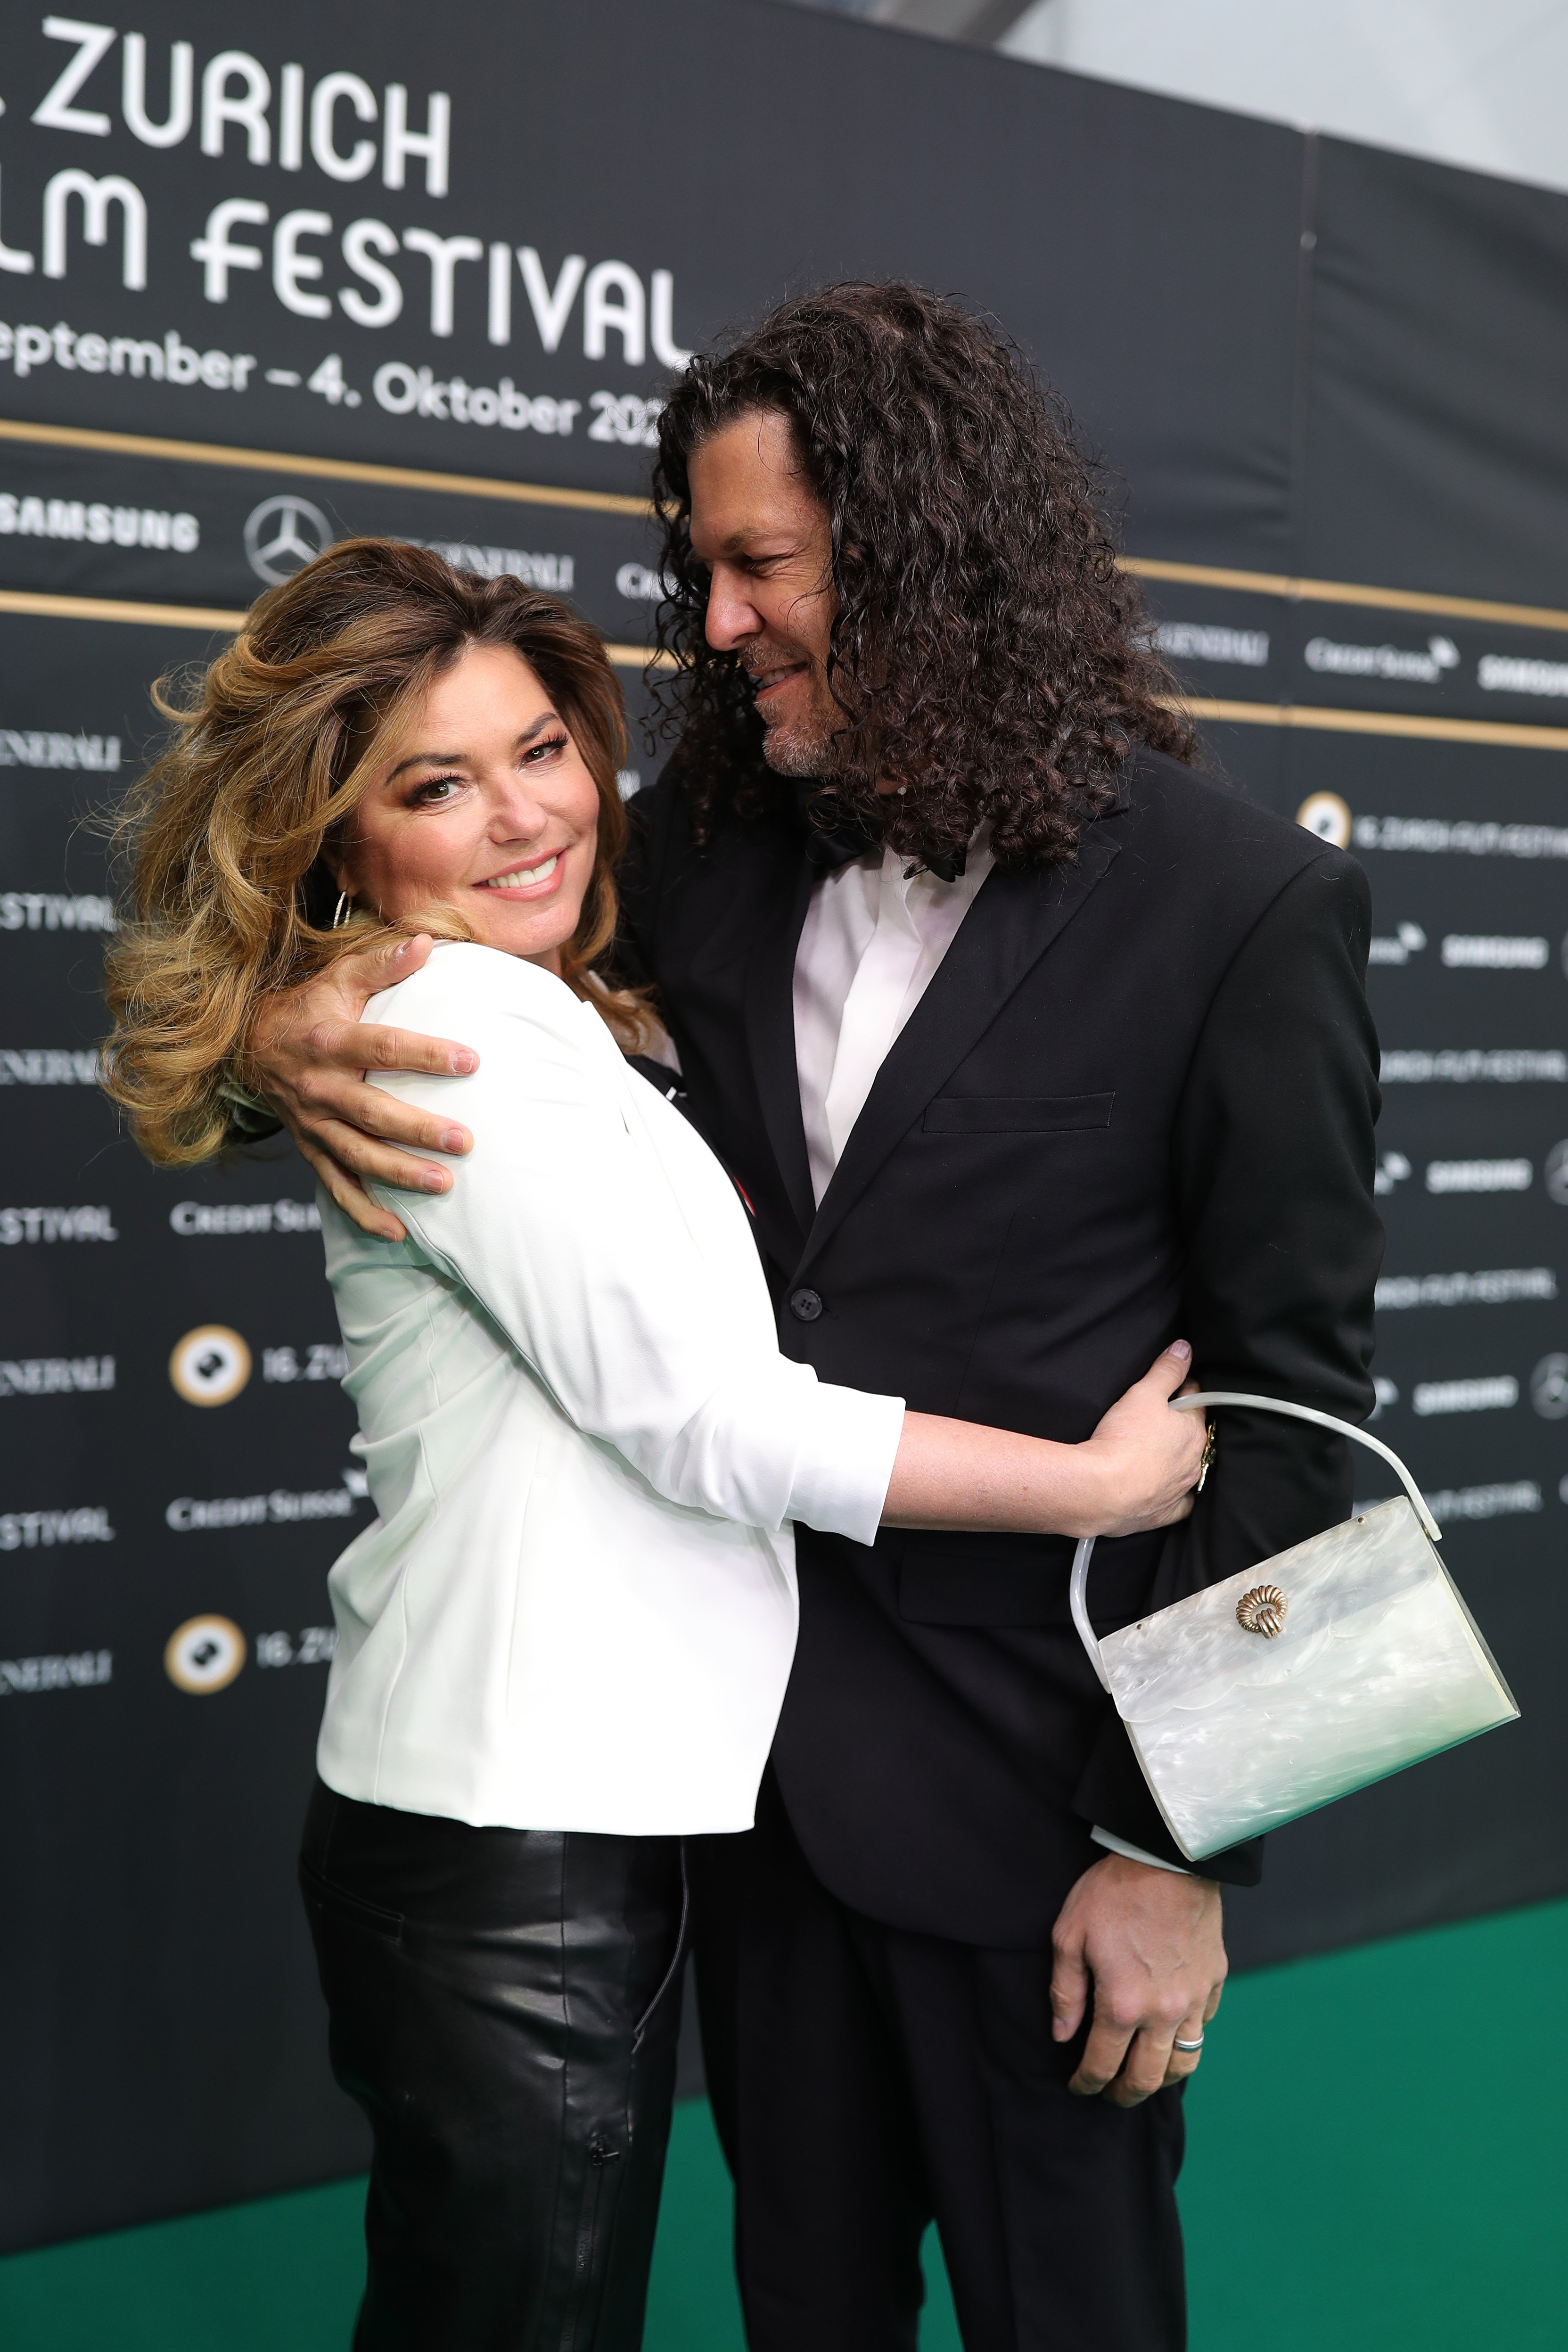 Shania Twain and husband Frederic Thiebaud attend a photocall at the Zurich Film Festival in Switzerland on September 26, 2020 | Photo: Getty Images